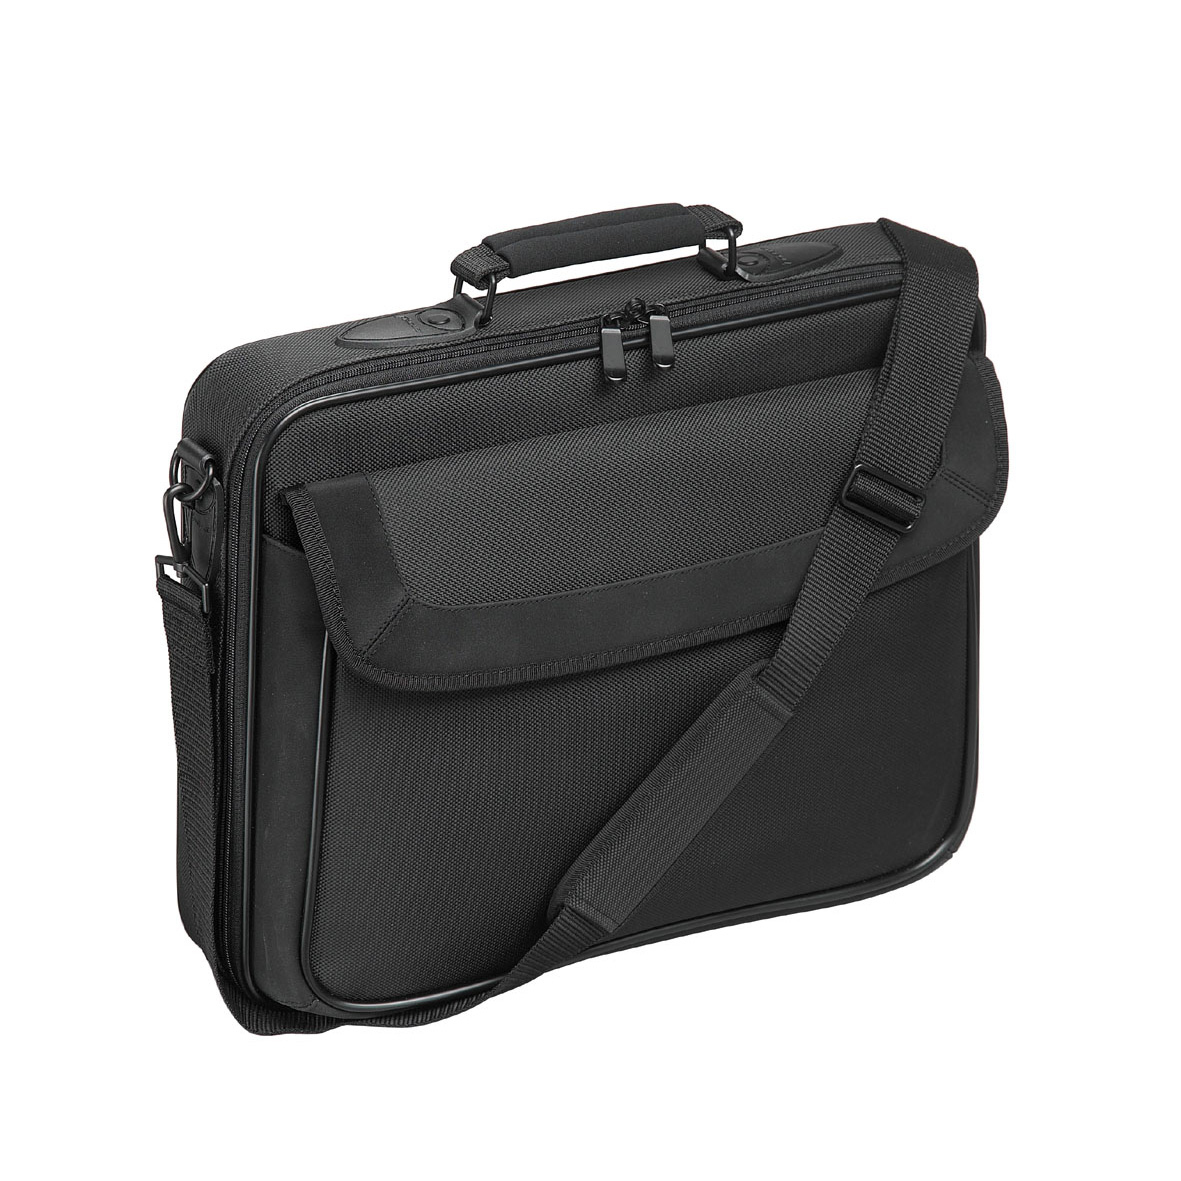 Targus 15.6-Inch Notebook Carrying Case - Black - (TAR300)